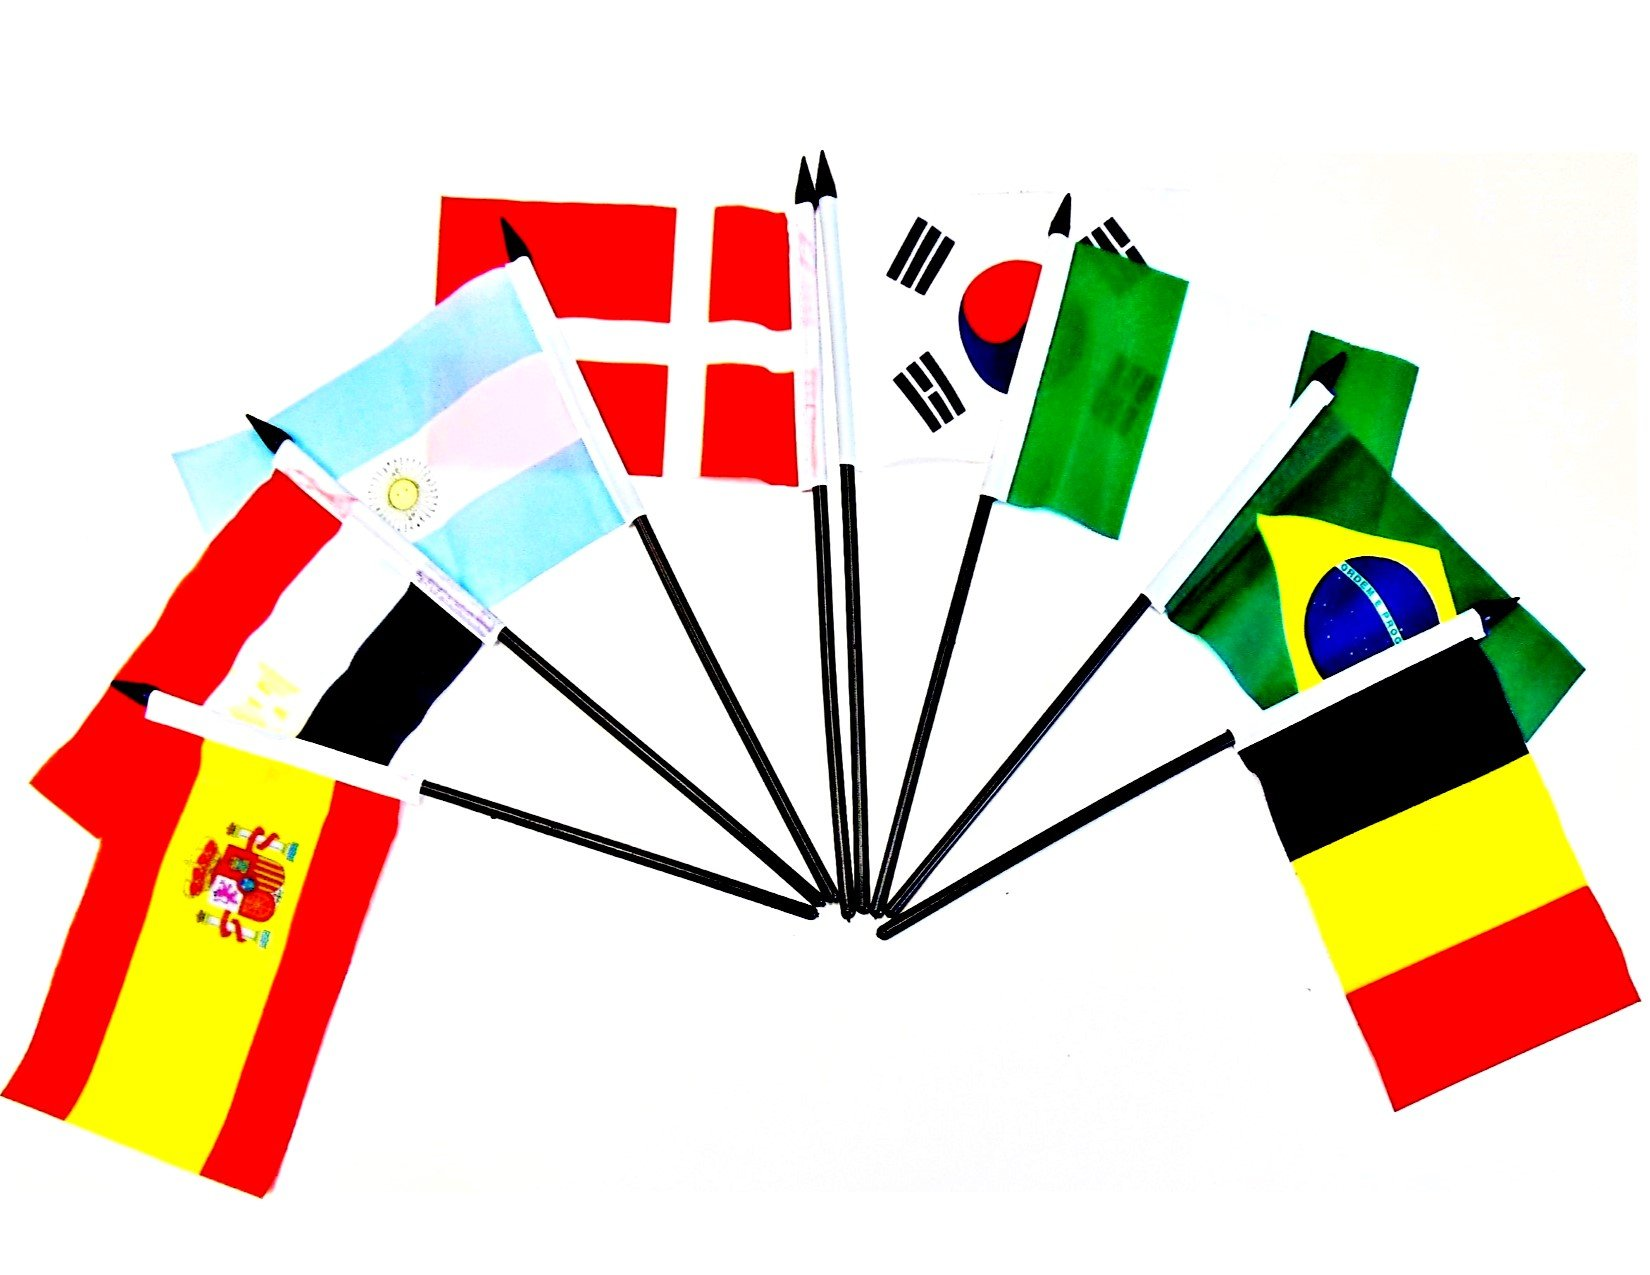 WORLD CUP 2018 SOCCER FLAGS 2018- SET of 32 Polyester 4''x6'' Flags, One Flag for Each Team Competing For the Cup, 4x6 Miniature Desk & Table Flags, Small Mini Stick Flags by World Flags Direct (Image #5)